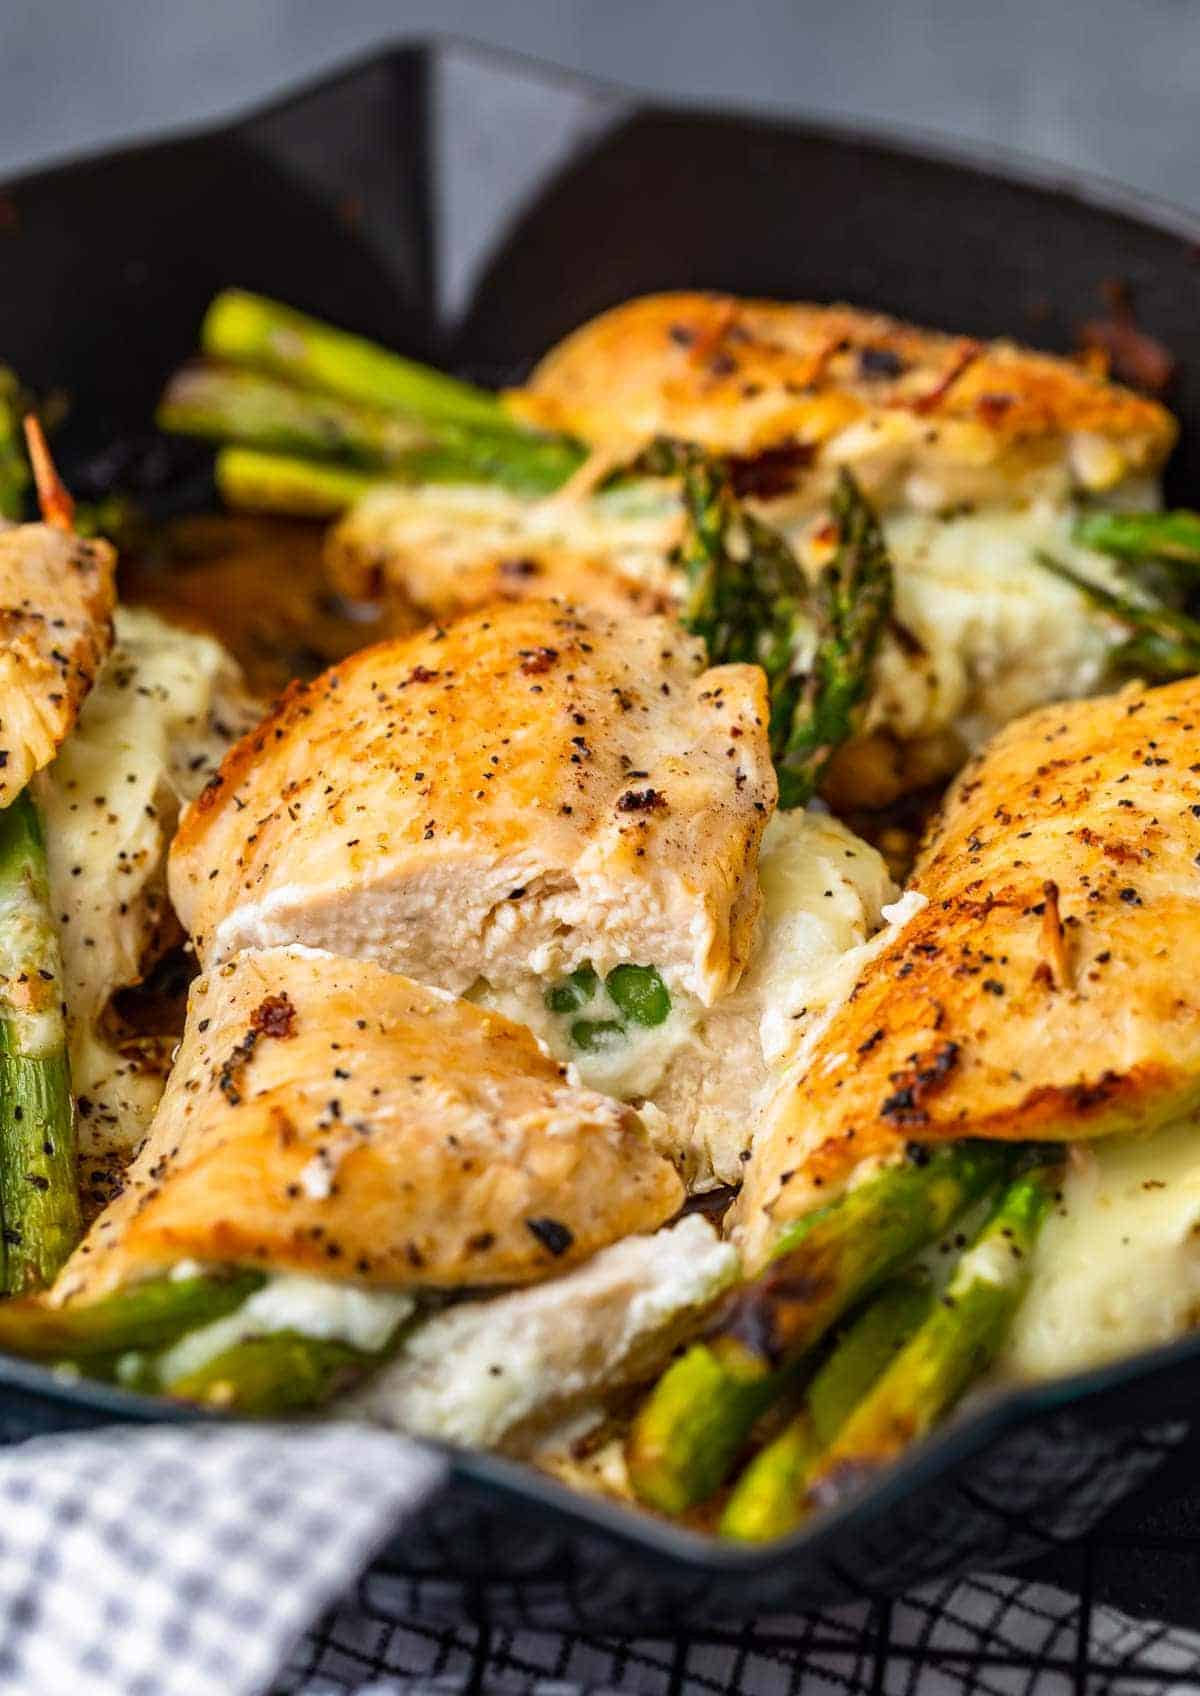 Cheesy Asparagus Stuffed Chicken Breast with goat cheese and mozzarella